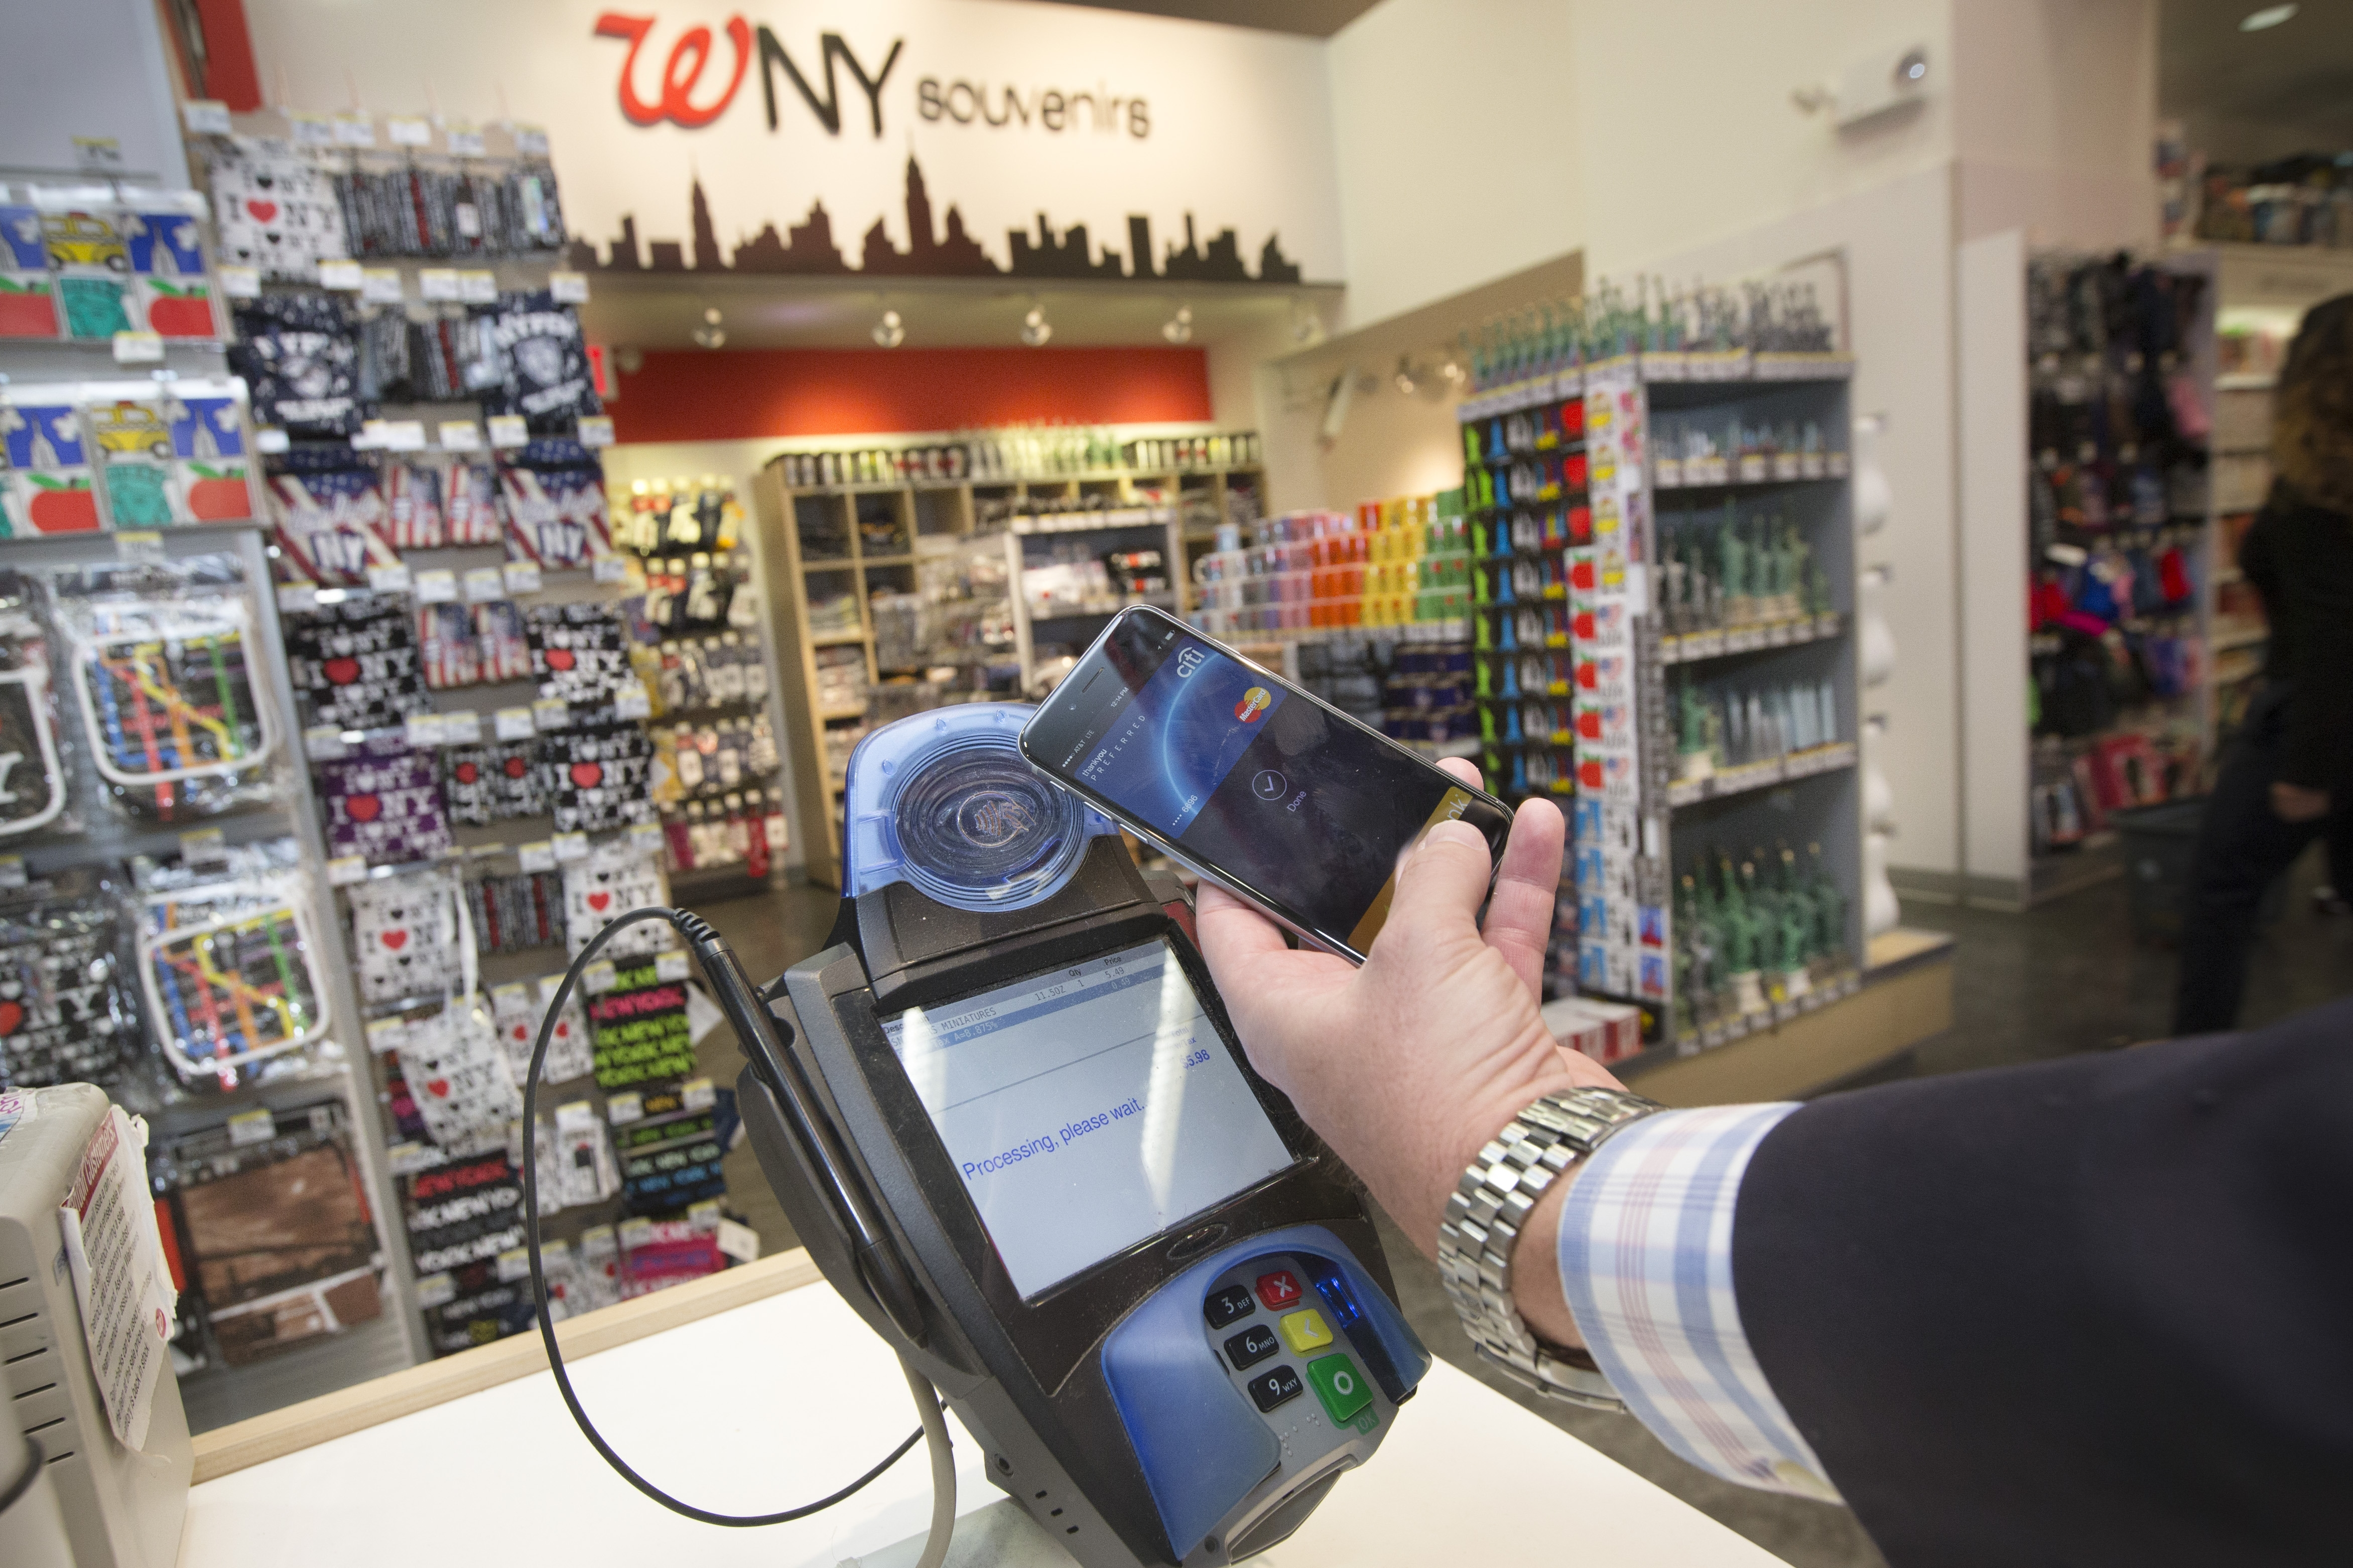 A customer makes a purchase with a MasterCard using Apple Pay on the iPhone 6 at a Walgreens in Times Square last Monday, the day the service launched.